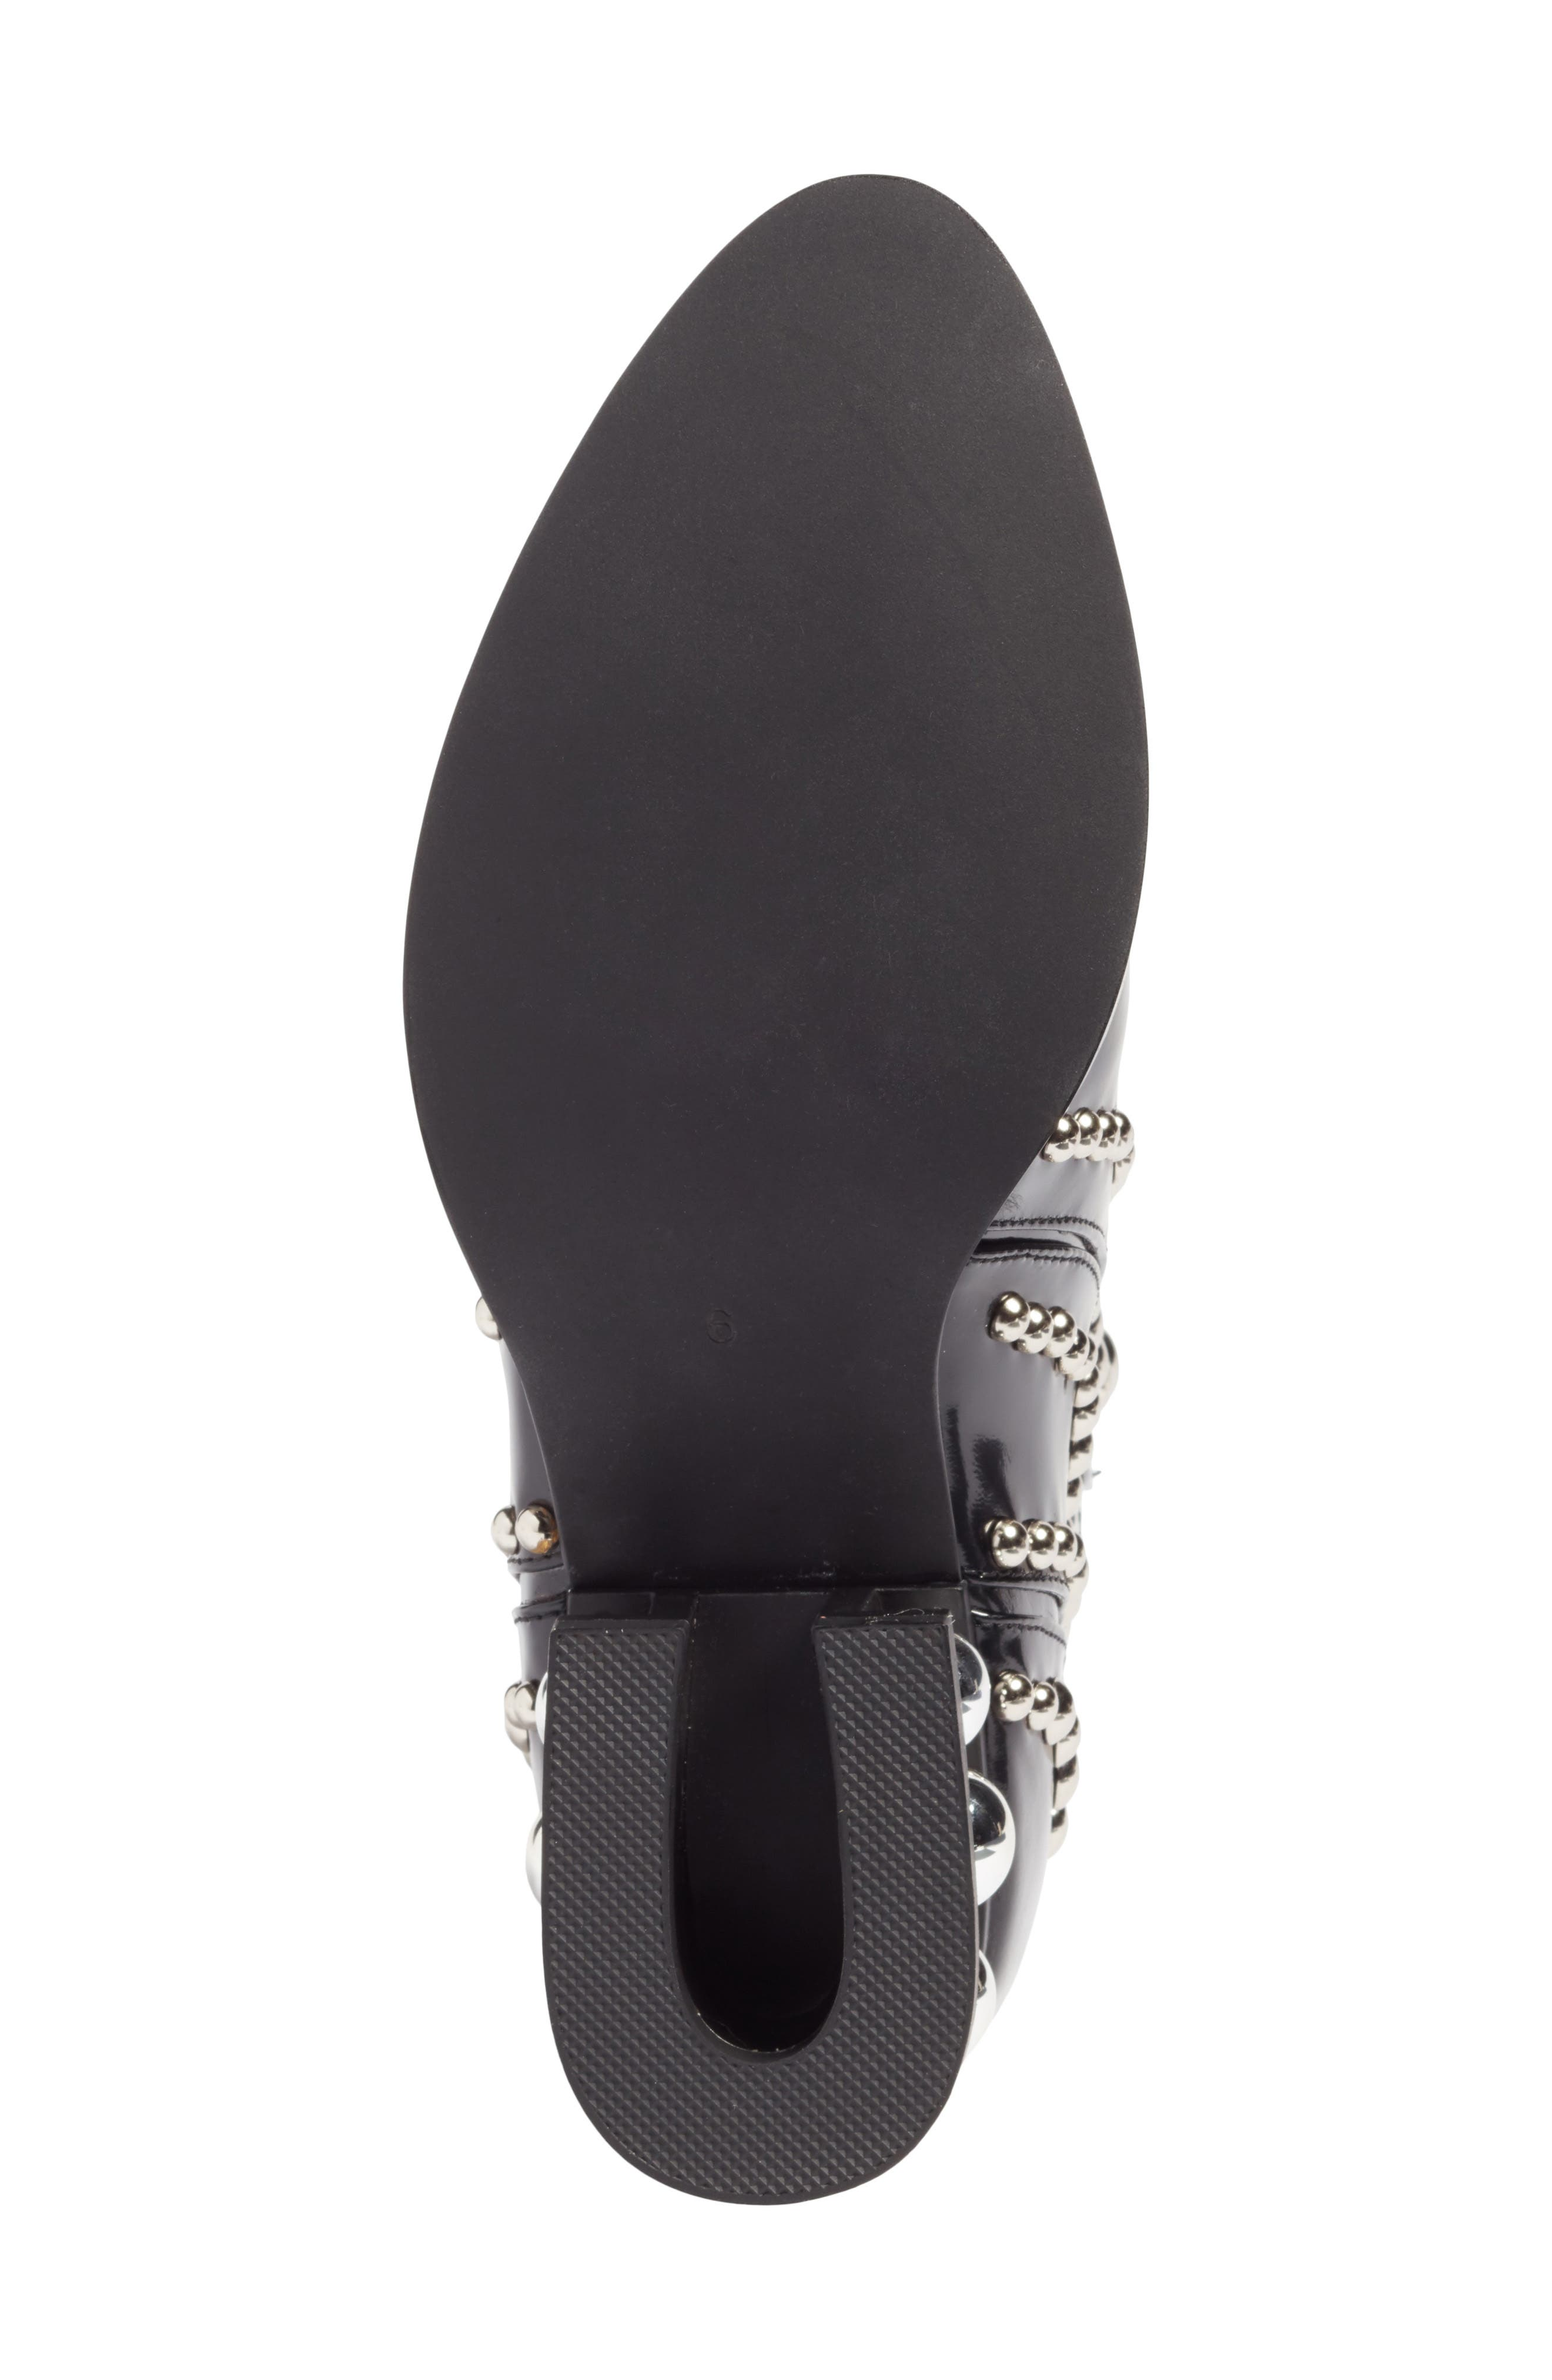 JEFFREY CAMPBELL, Rylance Studded Bootie, Alternate thumbnail 6, color, BLACK BOX SILVER LEATHER